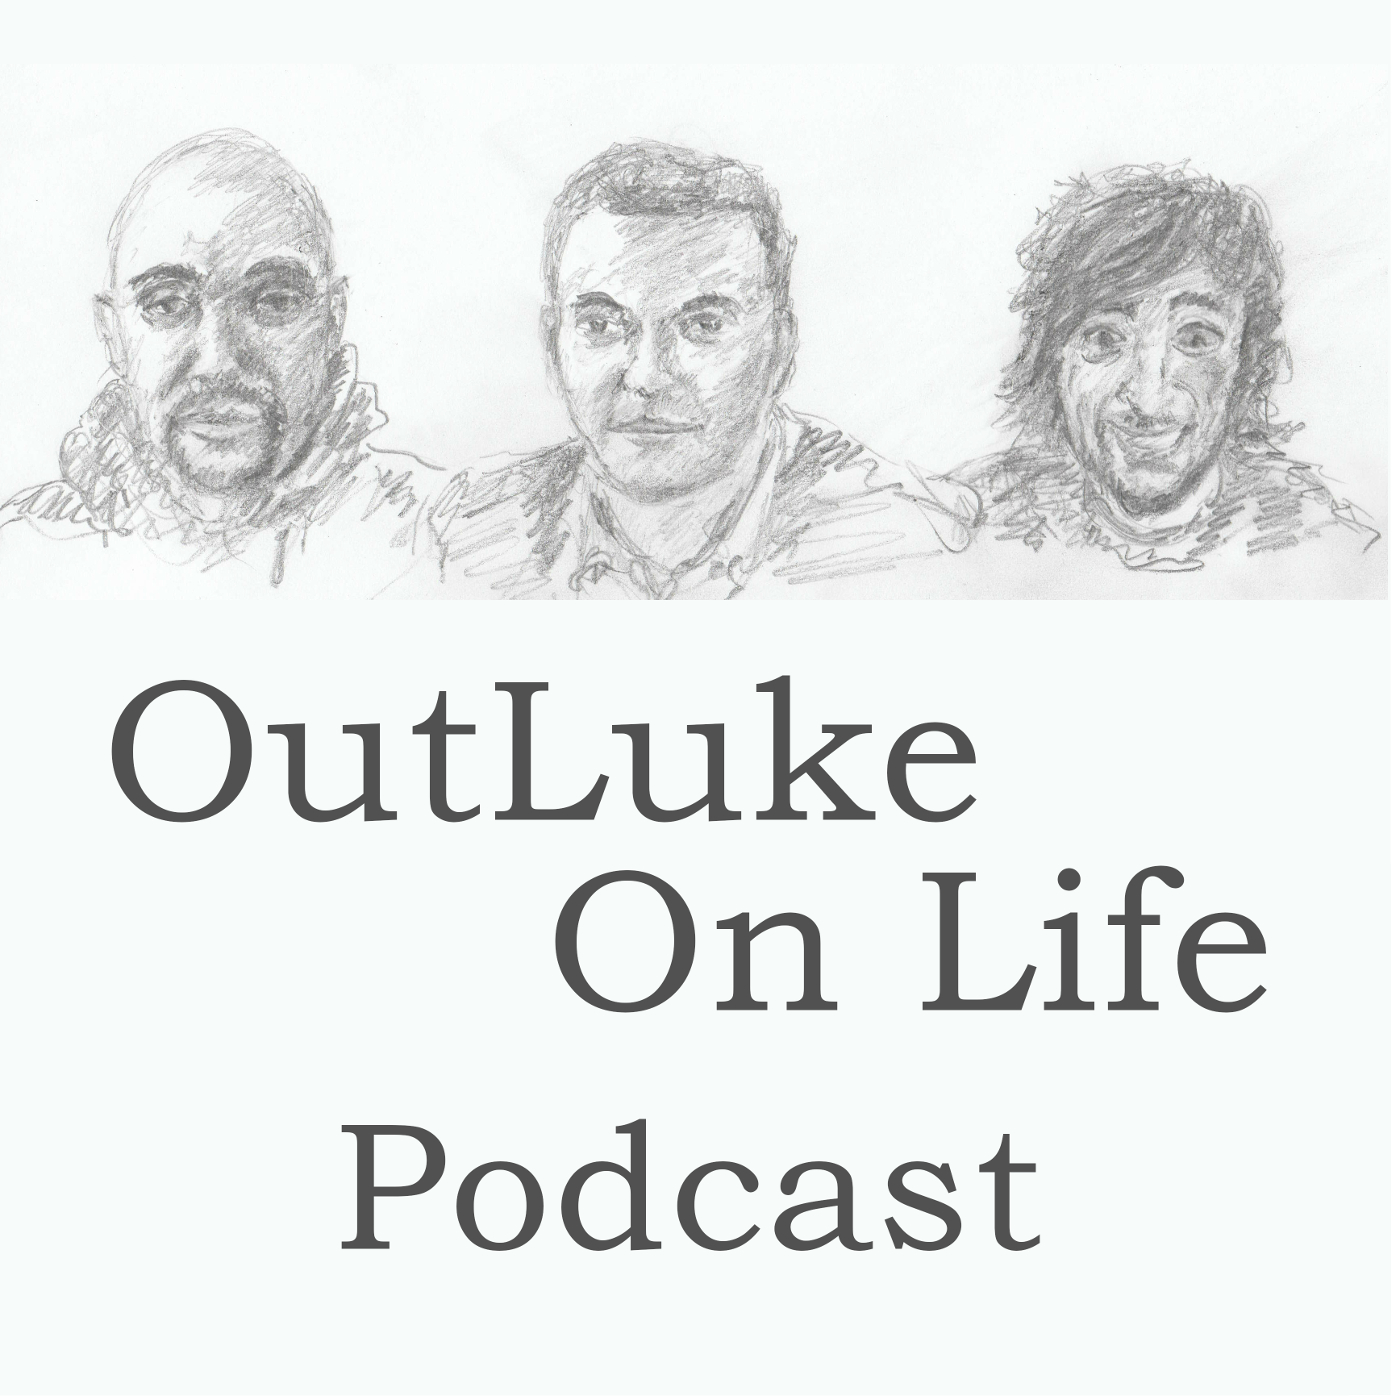 Comedy podcasts - UK Podcast Directory